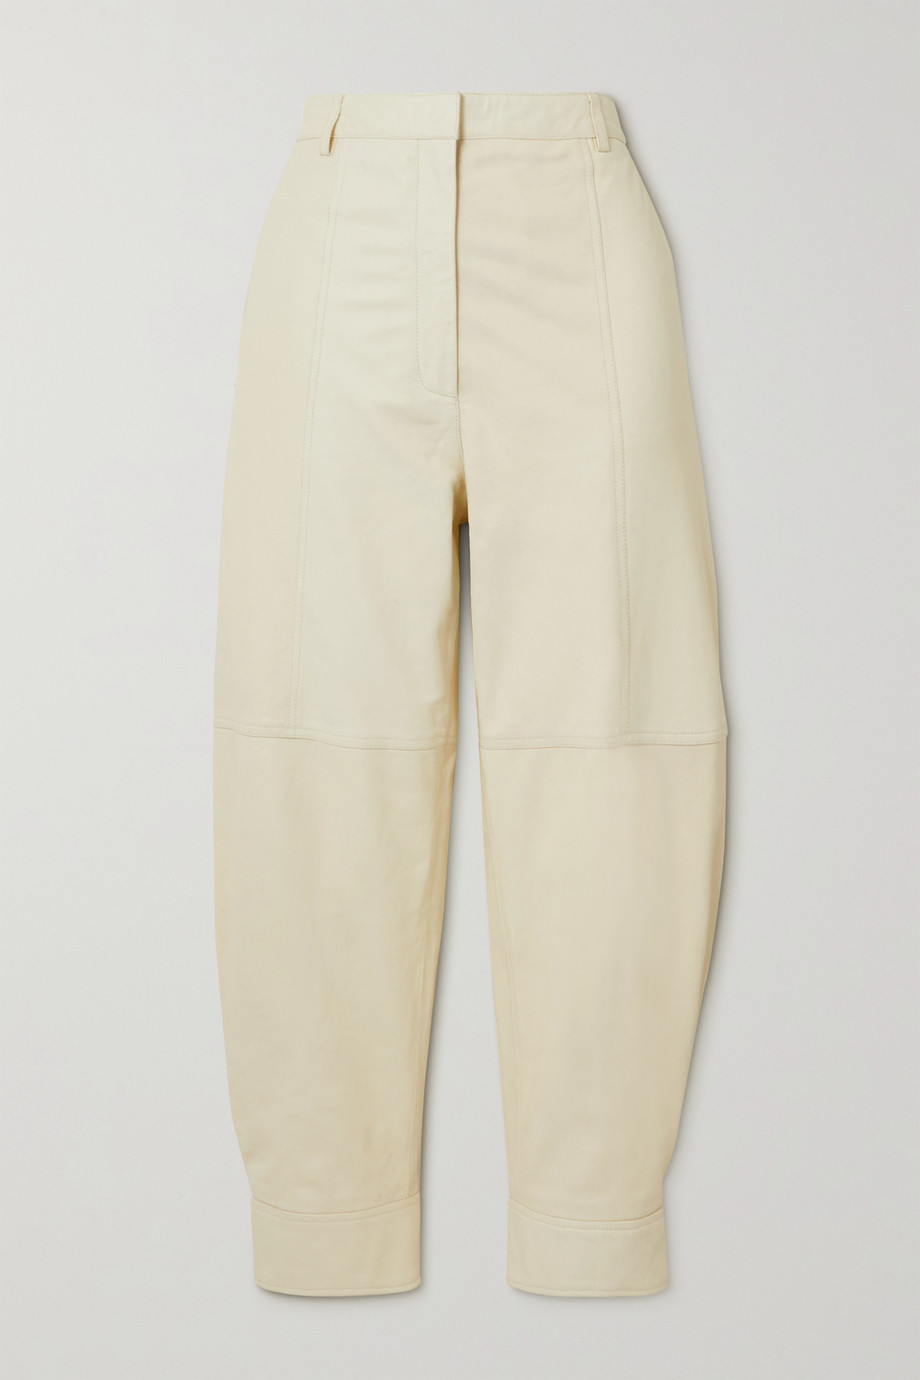 Tibi Leather tapered pants